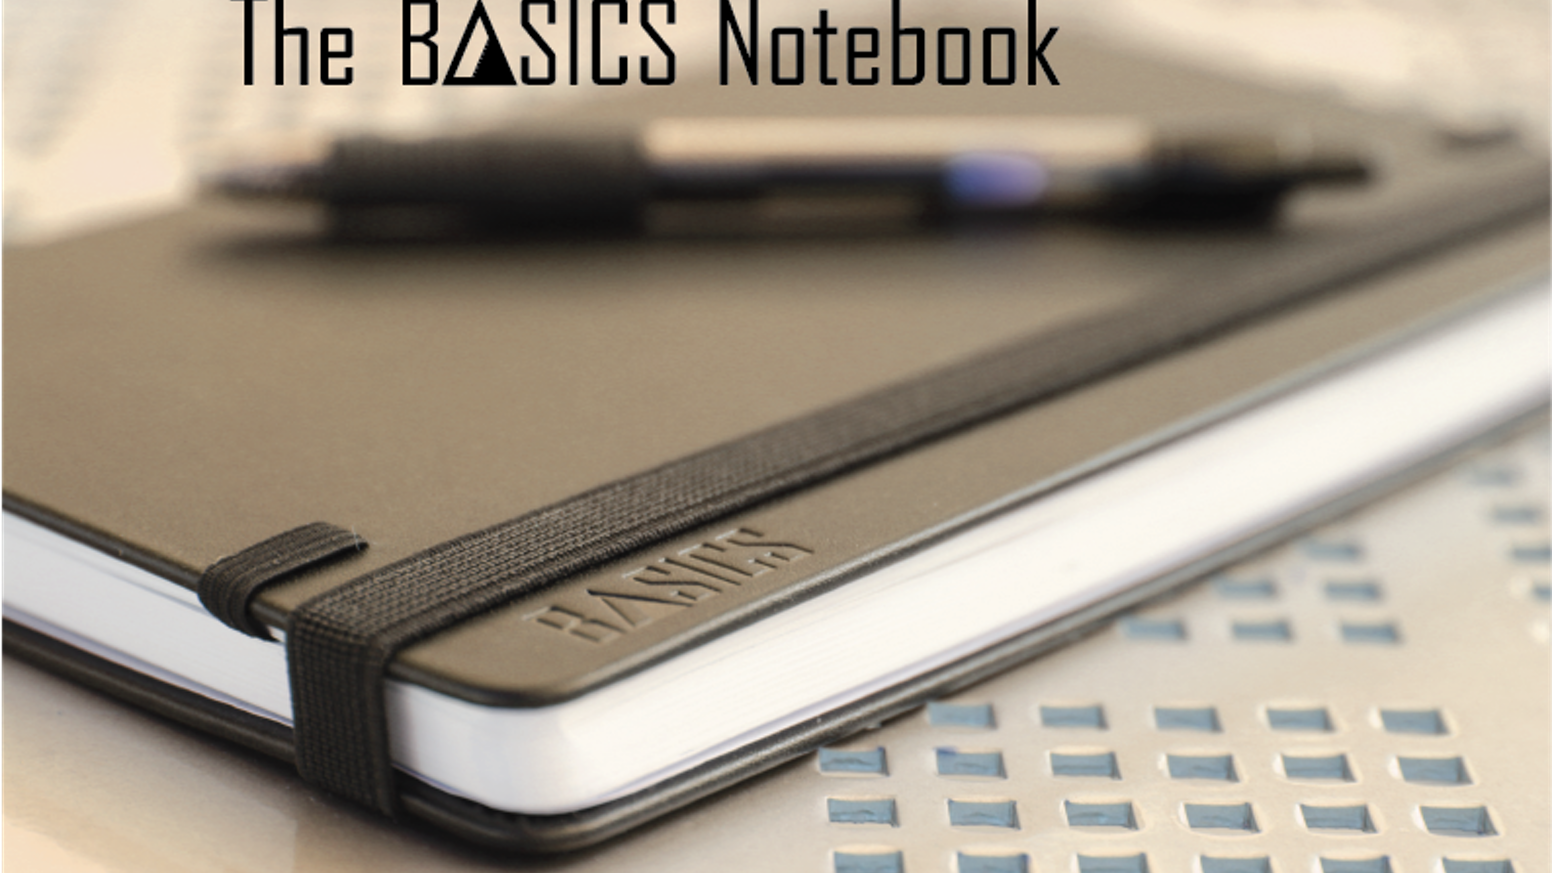 All-in-one notebook with a 12 or 6 month planner, lined or dot grid paper, sketchbook, whiteboard paper, goal setting guide, checklists and more.